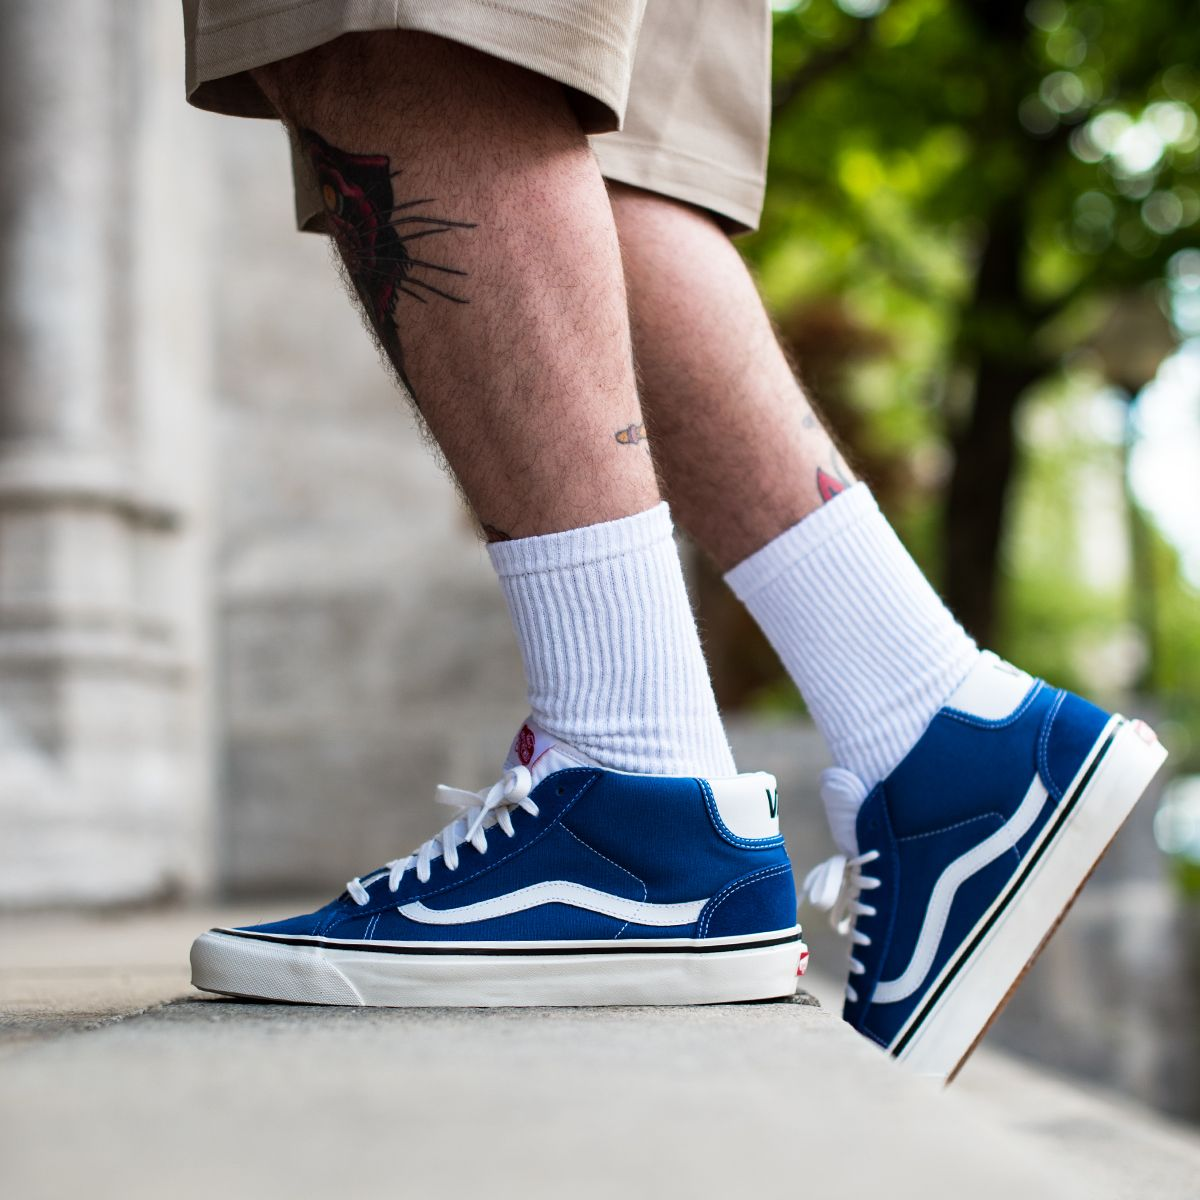 Get > vans old skool 37 dx OFF 75% gentlementours.hu!